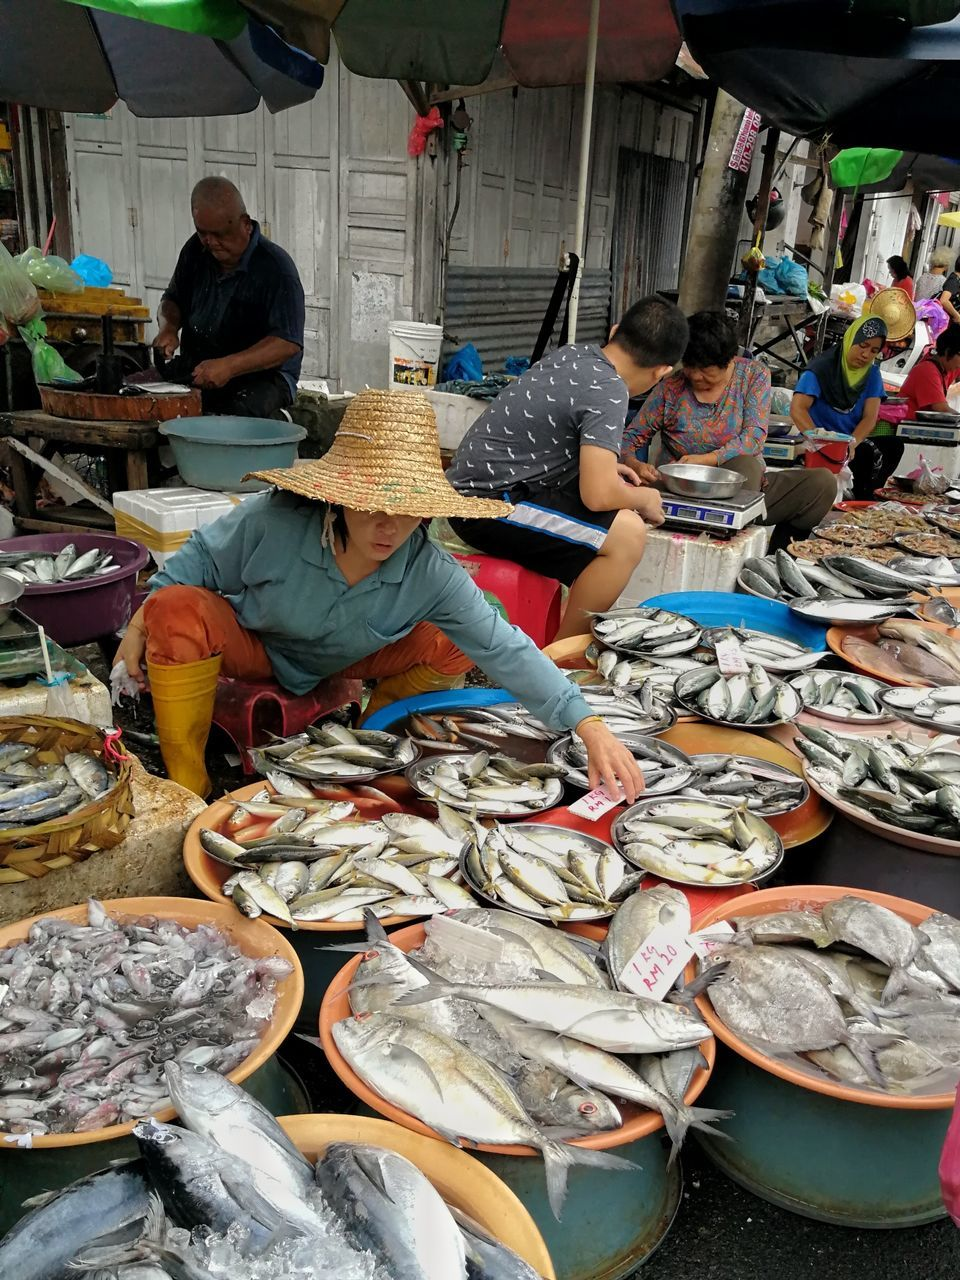 market, market stall, seafood, retail, selling, market vendor, real people, for sale, small business, fish market, men, occupation, food, fish, choice, food and drink, working, large group of objects, freshness, healthy eating, large group of people, women, day, business, outdoors, adult, people